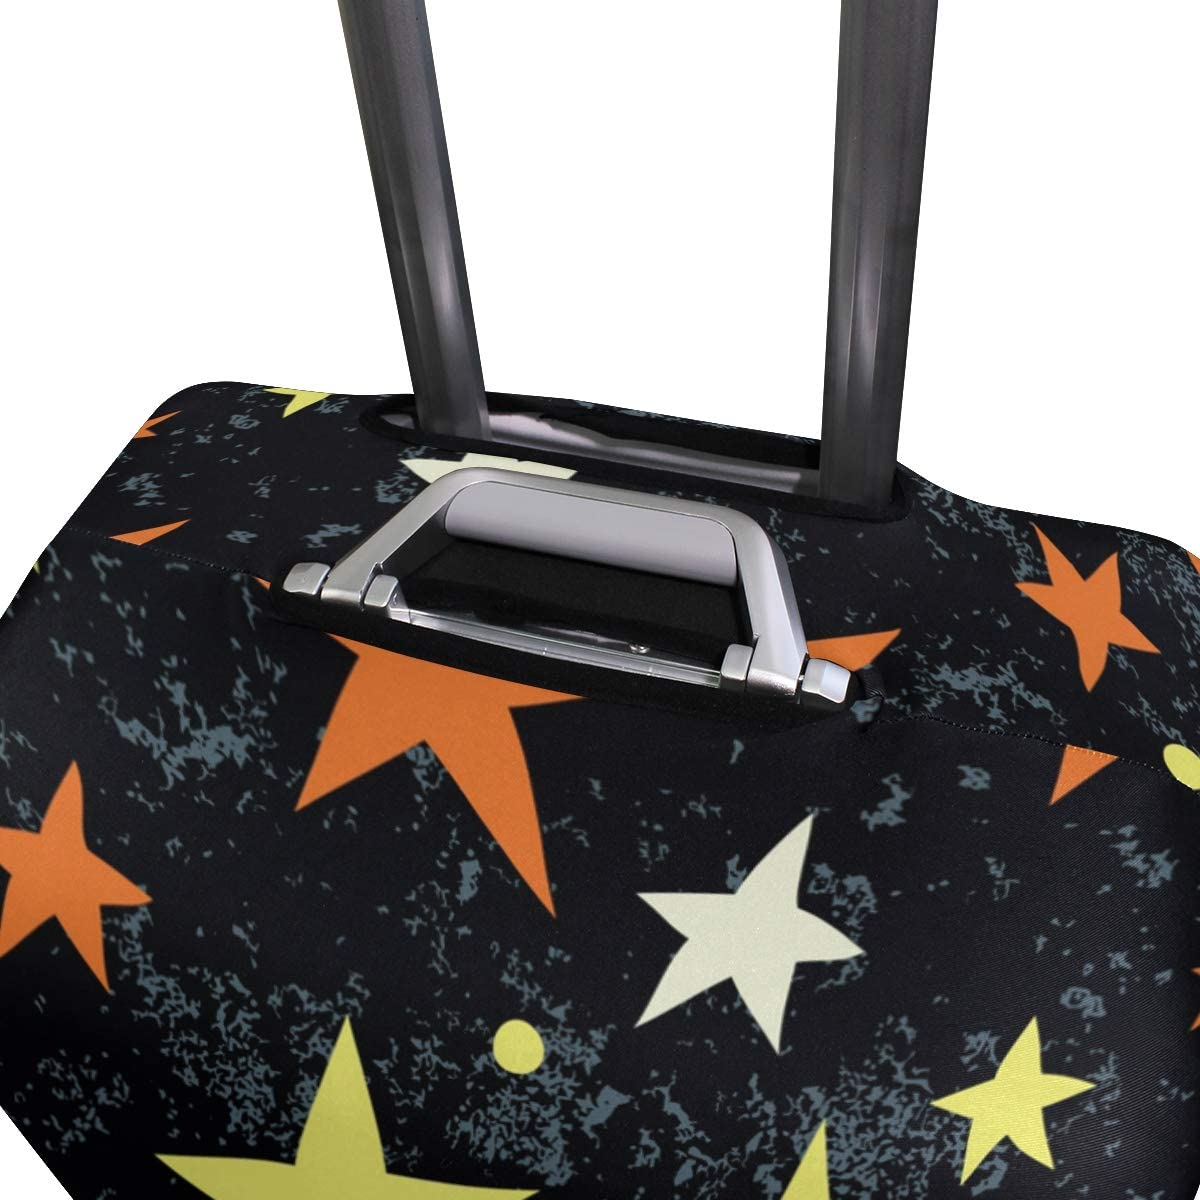 Stars Pattern Travel Luggage Cover Stretchable Polyester Suitcase Protector Fits 18-20 Inches Luggage